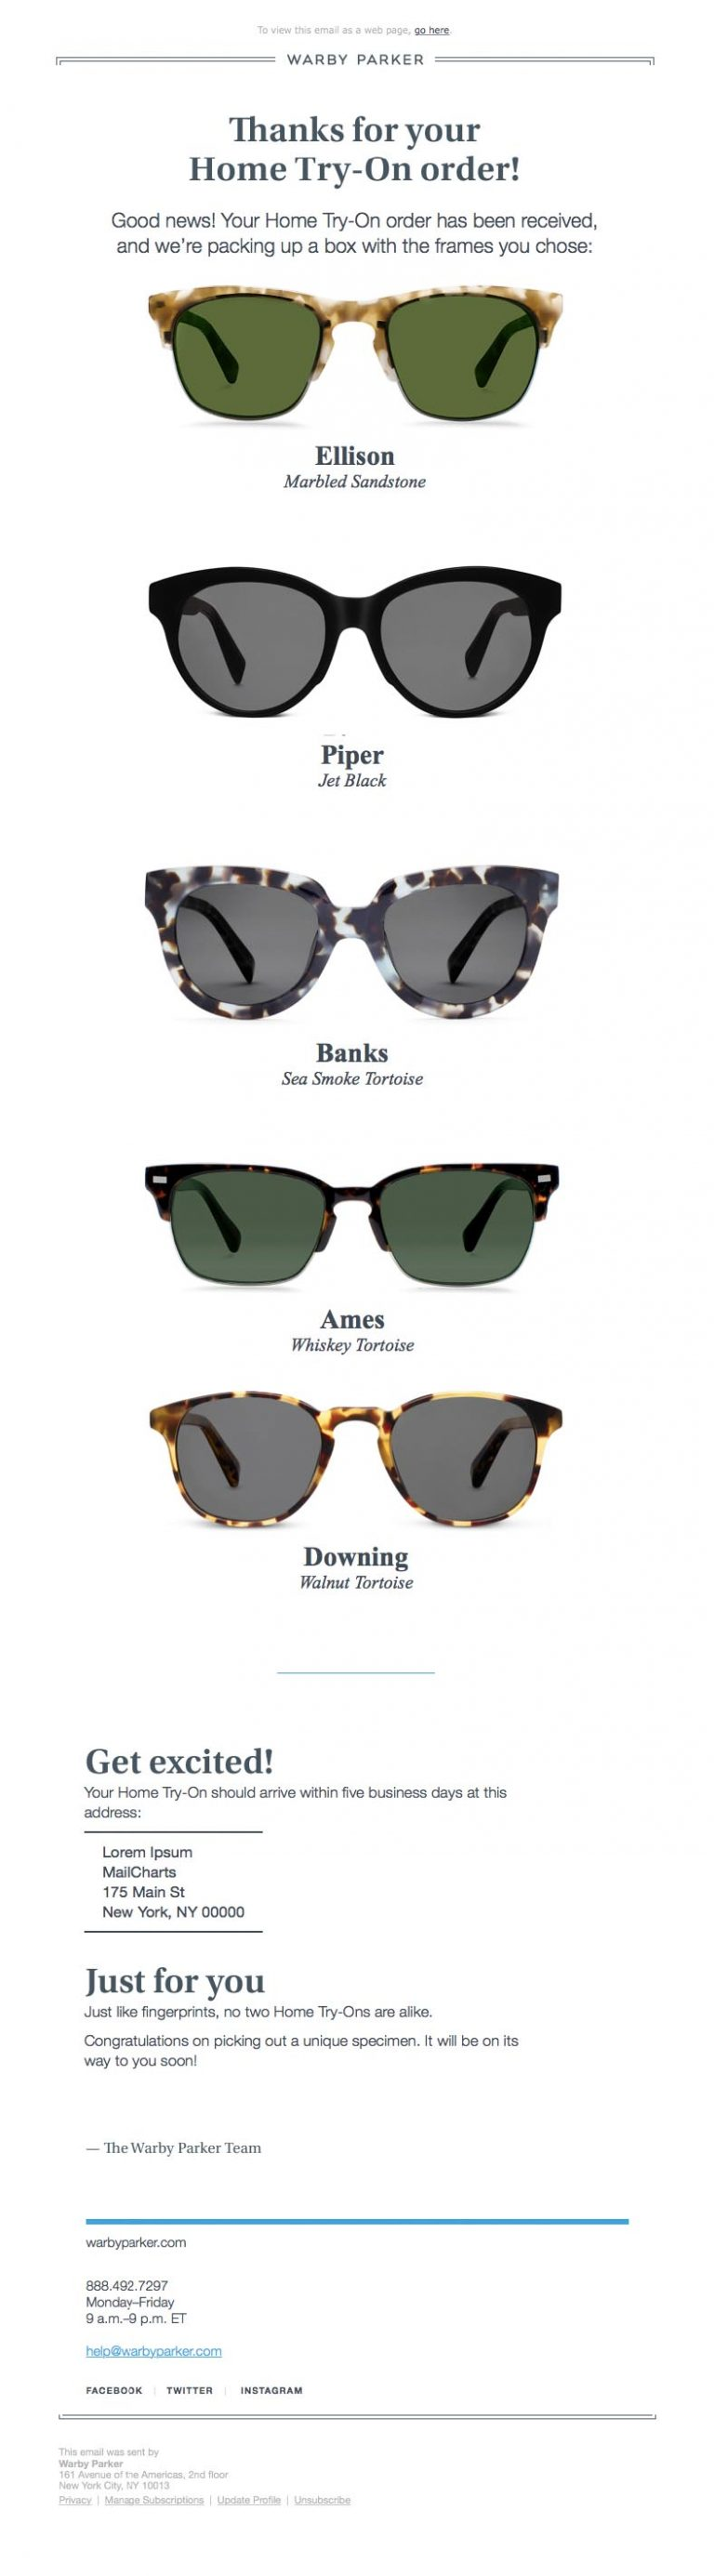 Warby Parker transactional email